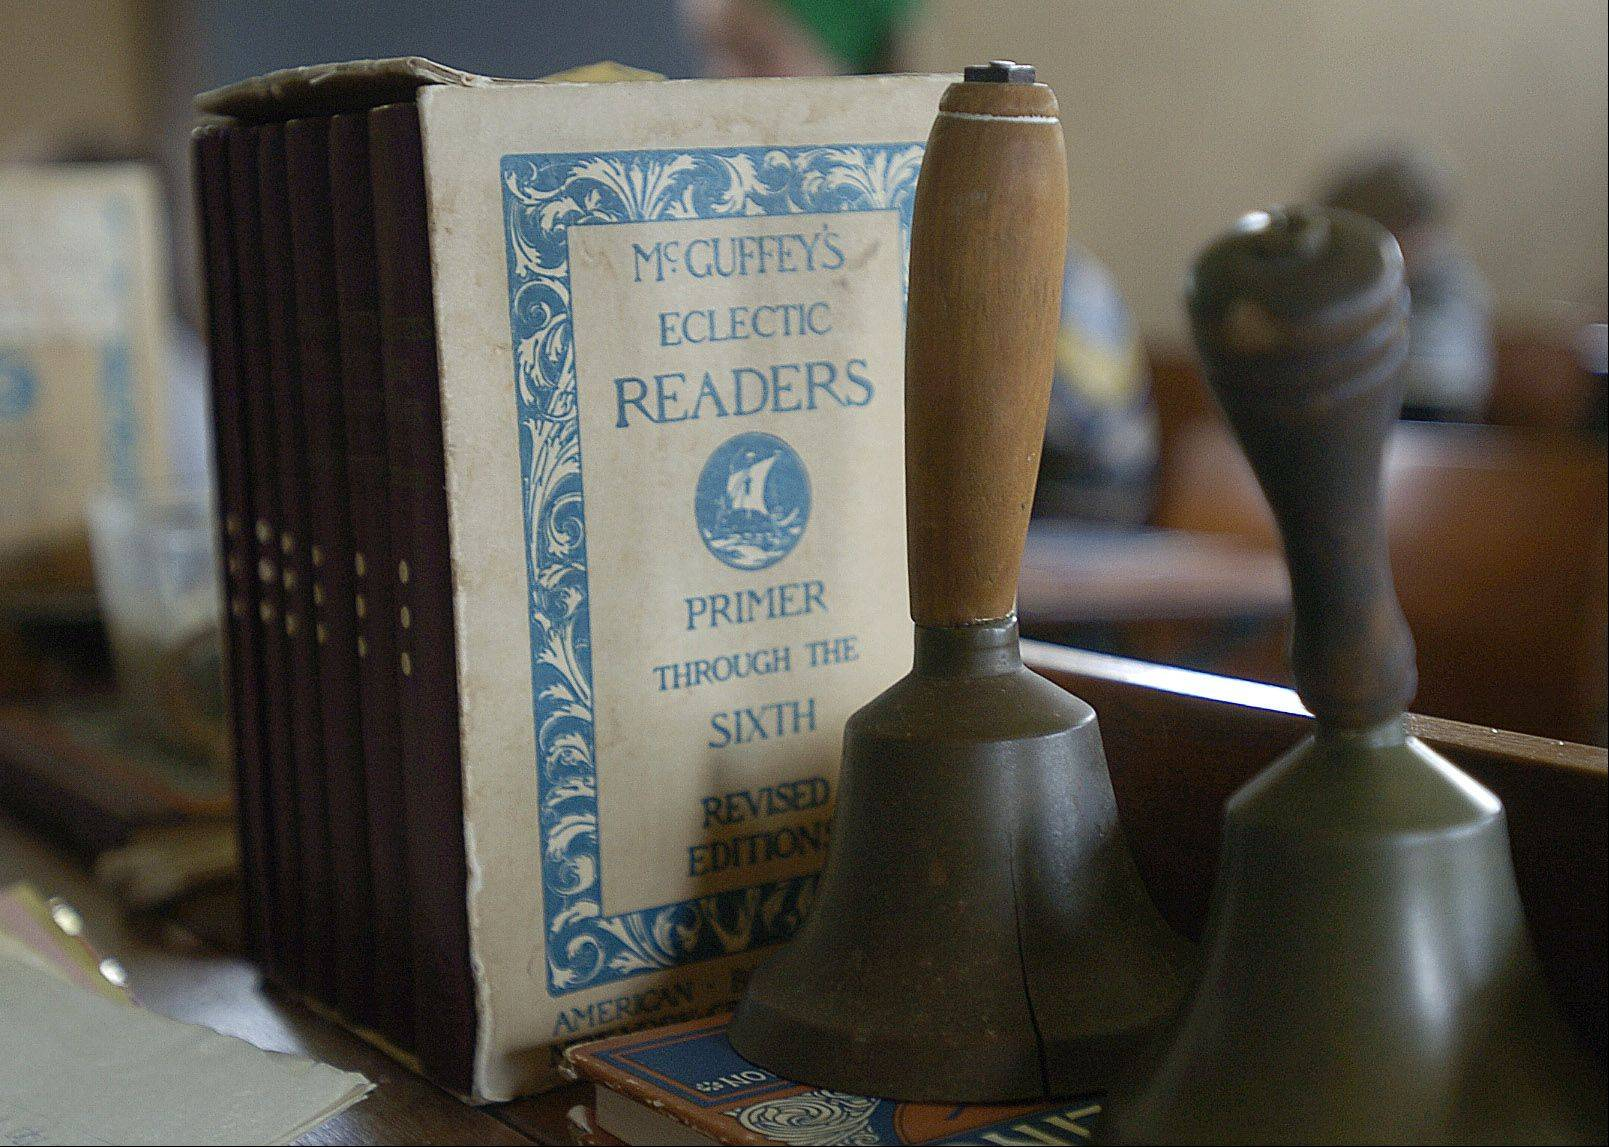 The McGuffey Reader was just the tonic for small town school districts like Arlington Heights, in the mid-19th century.